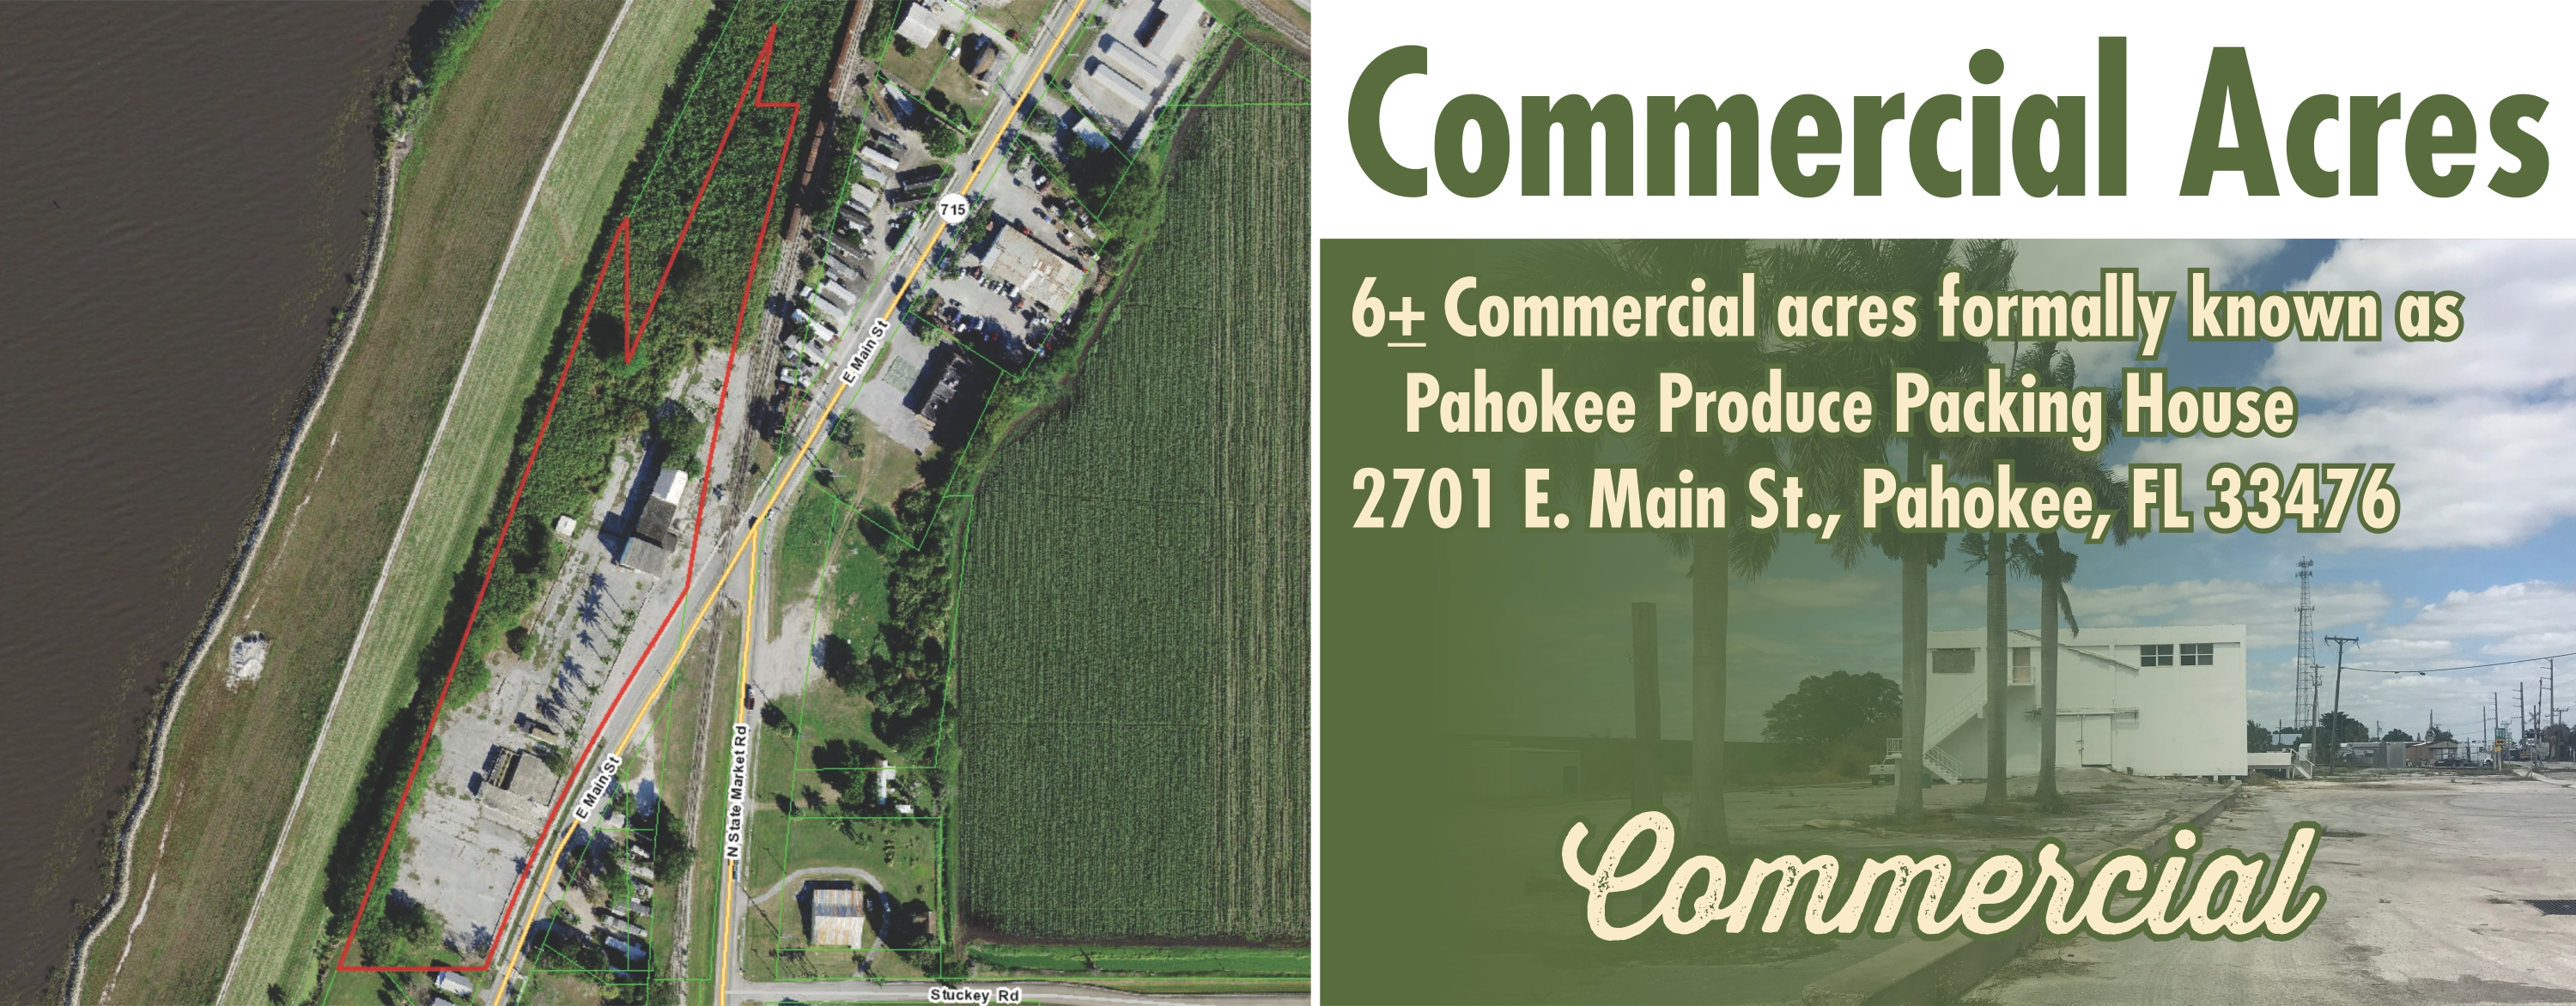 Commercial Acres - Pahokee FL header